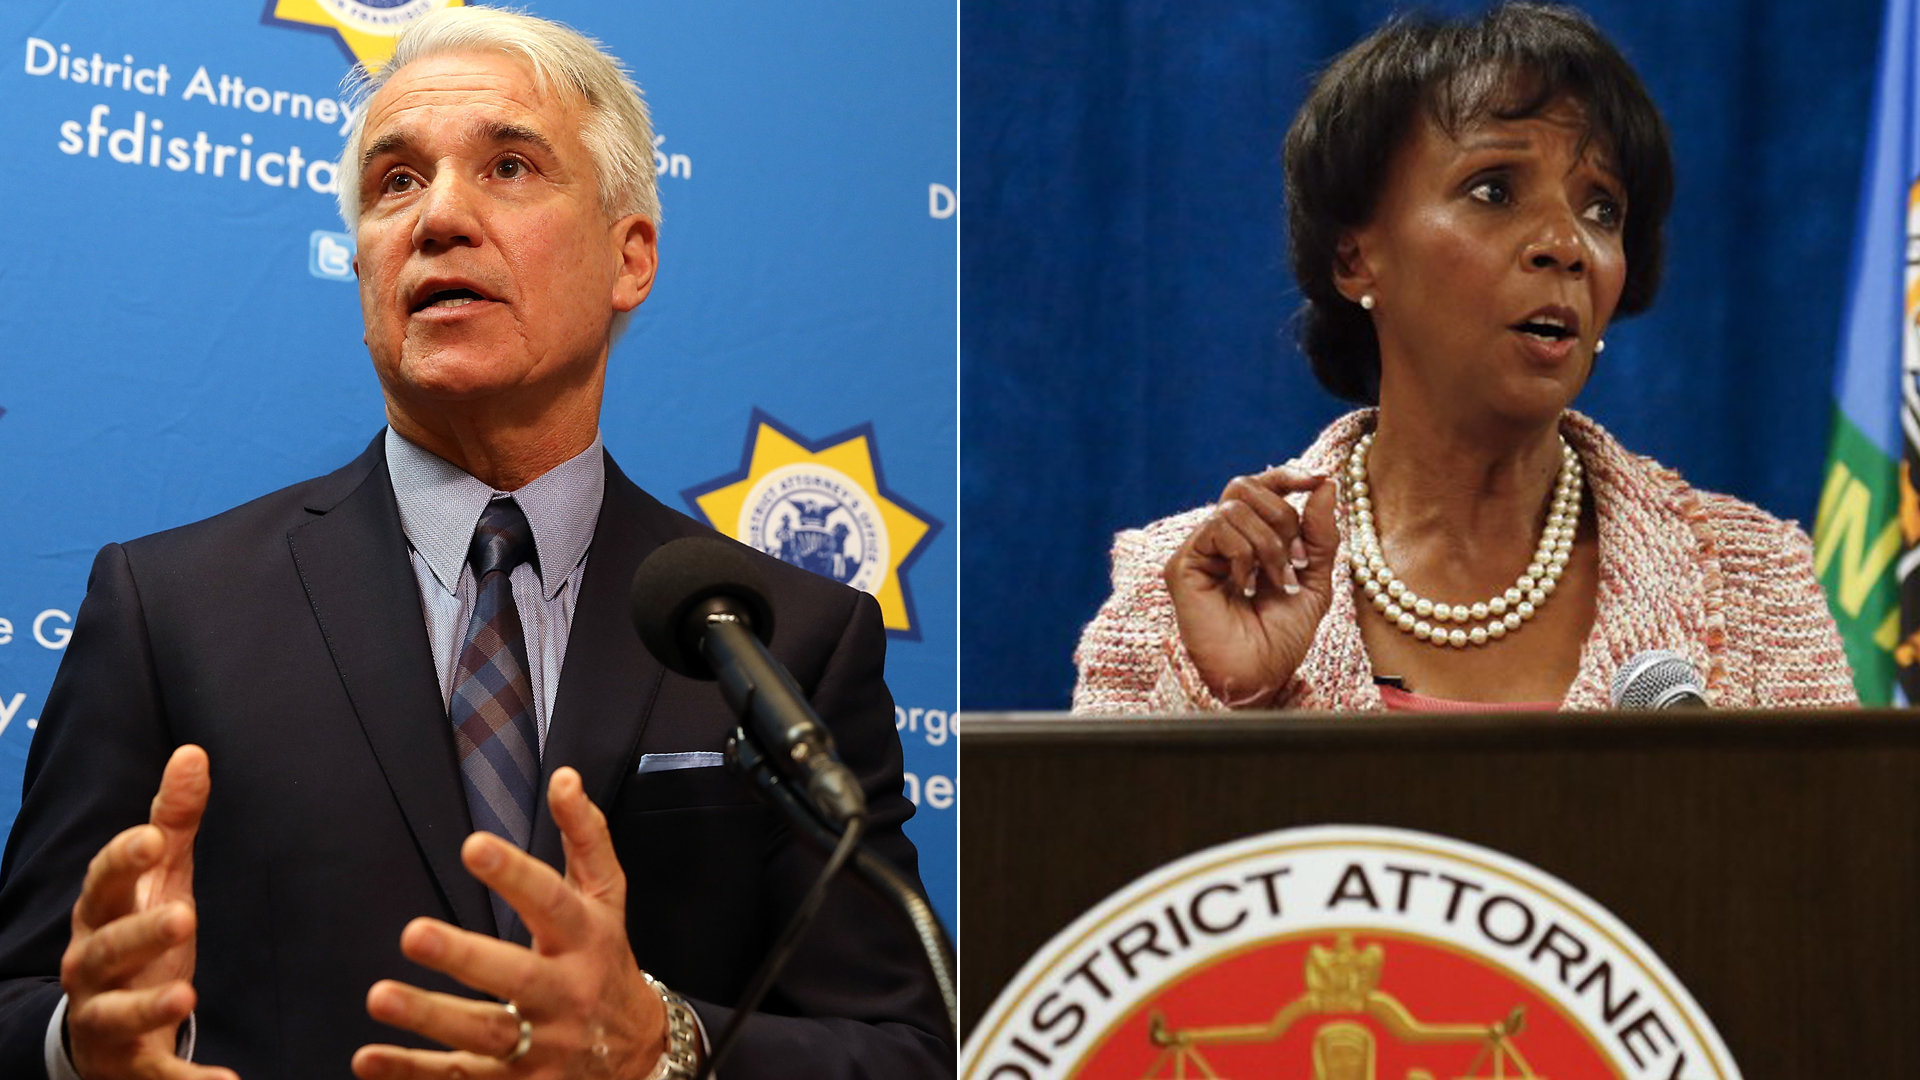 George Gascon, left, speaks during a new conference on Dec. 9, 2014 in San Francisco. On the right, Jackie Lacey appears in an undated photo. (Credit: Justin Sullivan / Getty Images; Mel Melcon/Los Angeles Times))